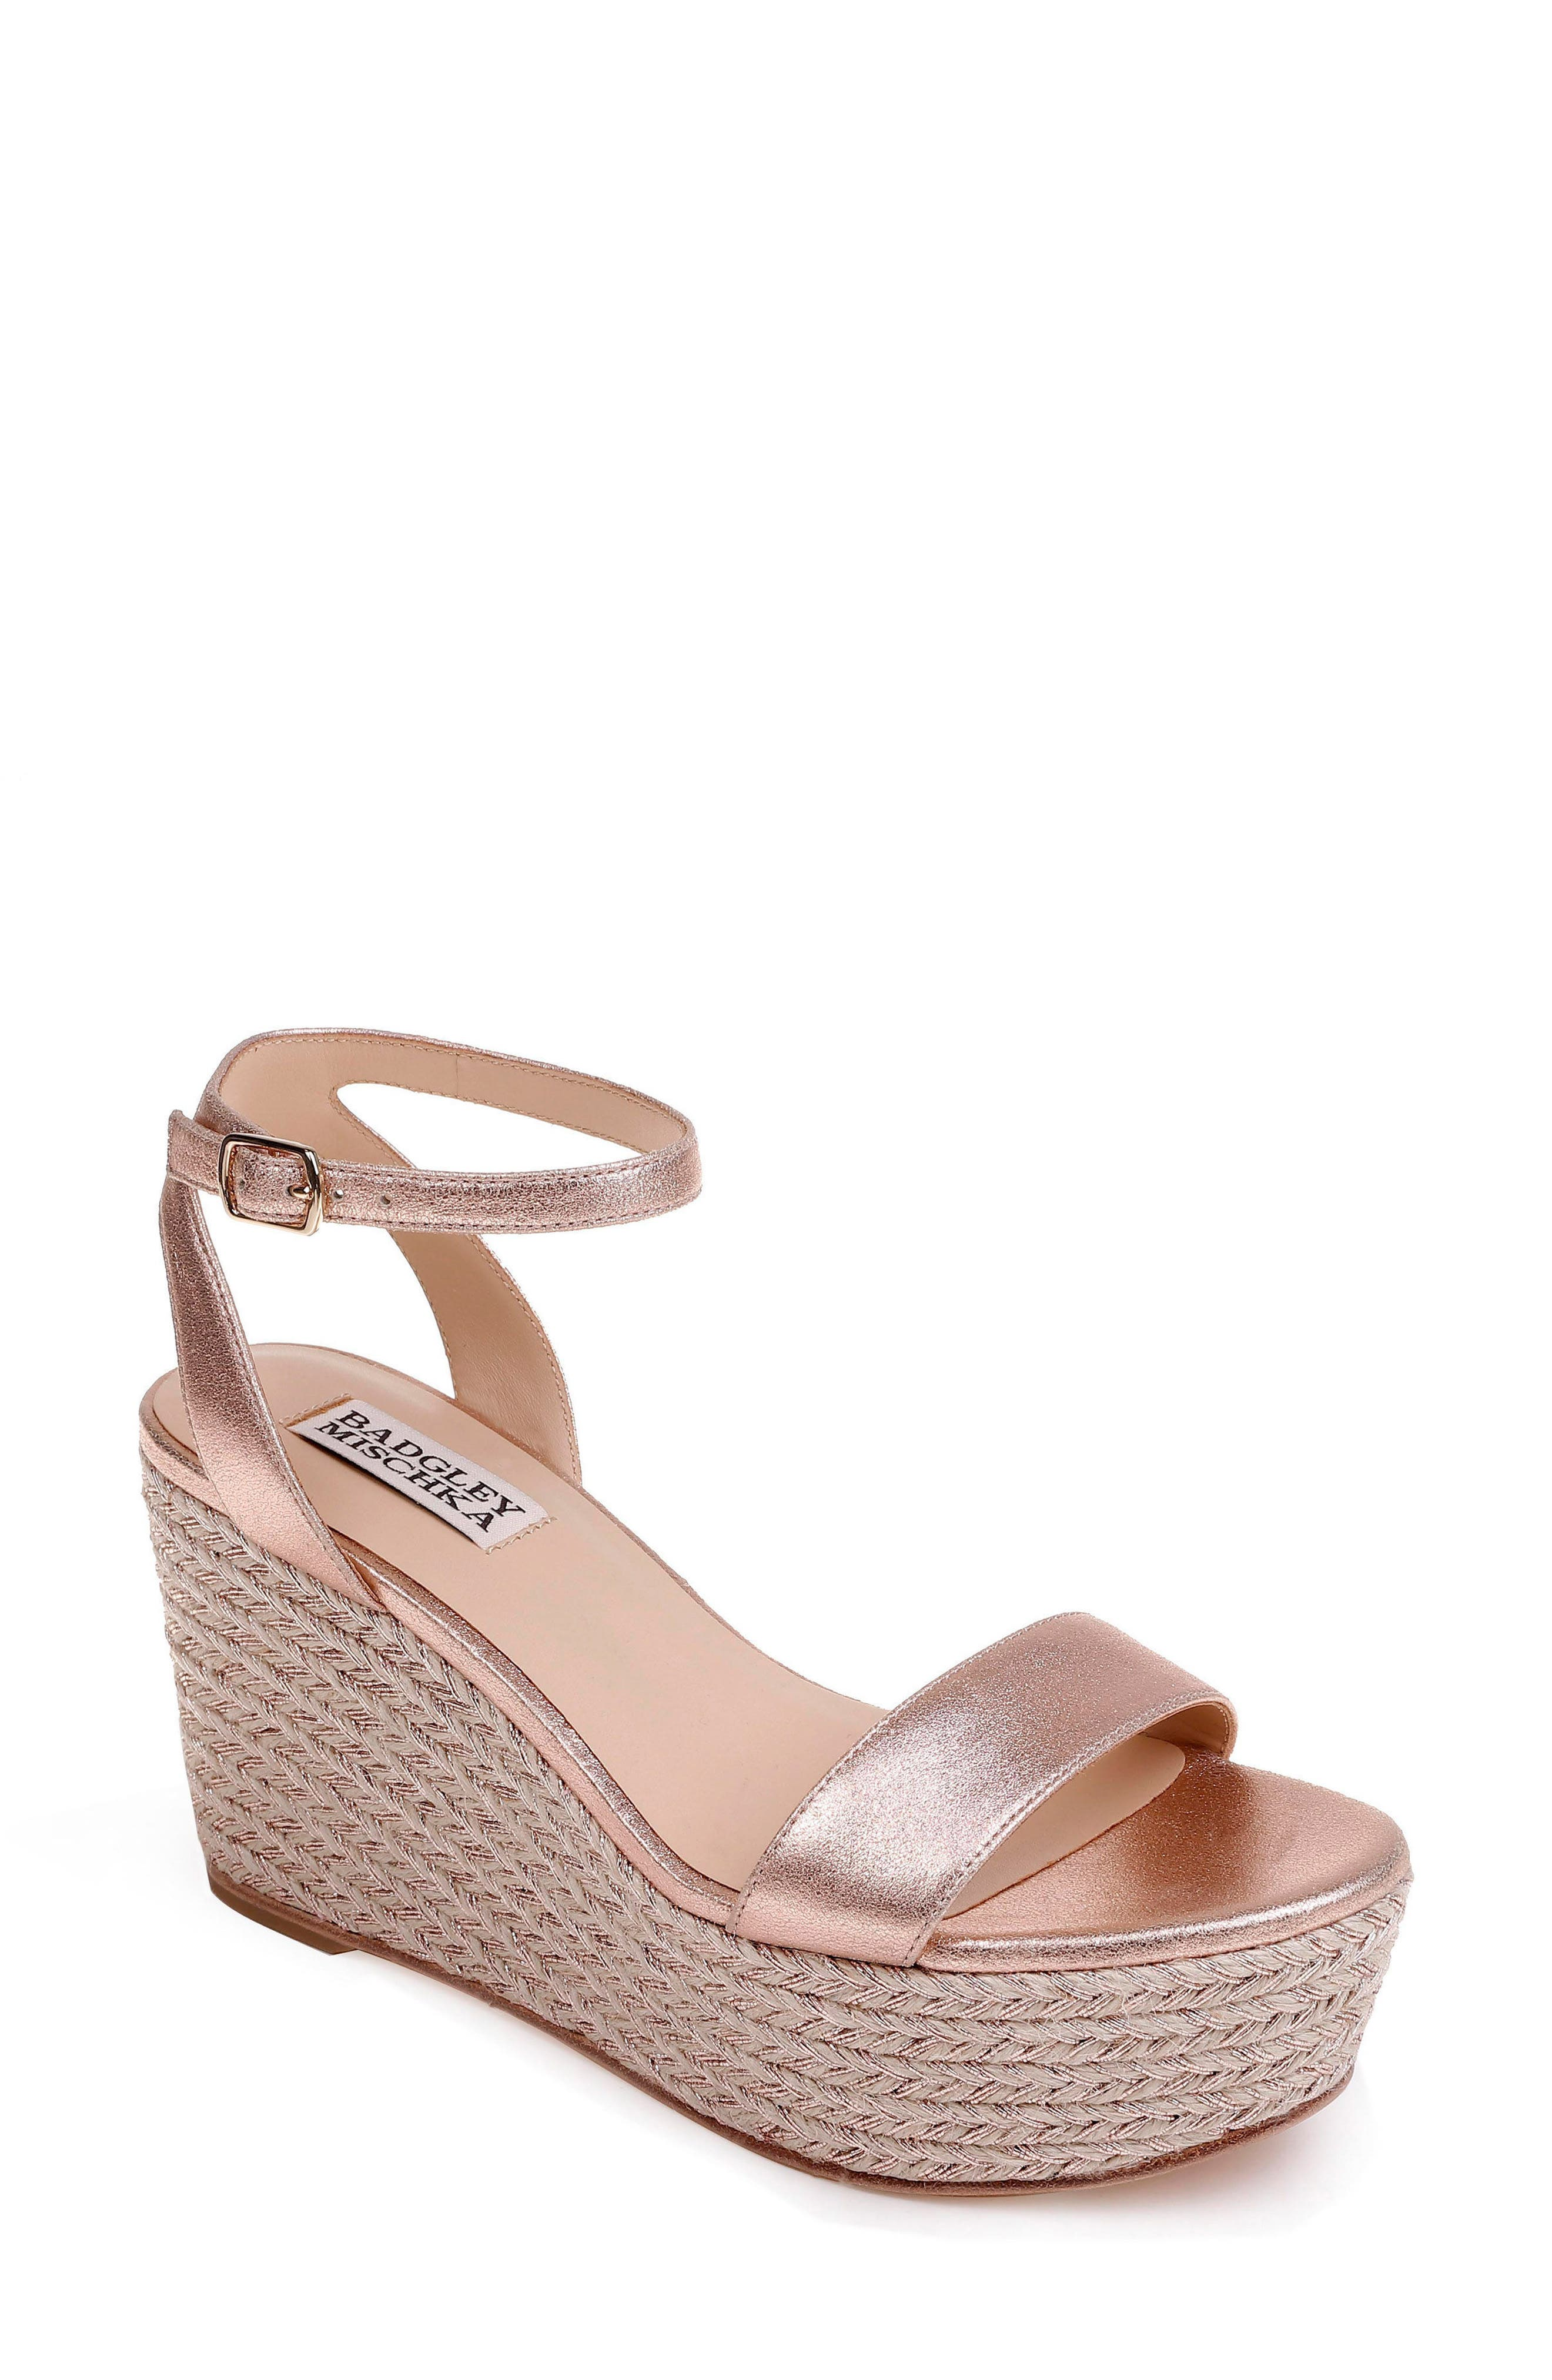 Holmes Espadrille Wedge,                             Main thumbnail 1, color,                             Rose Gold Metallic Suede